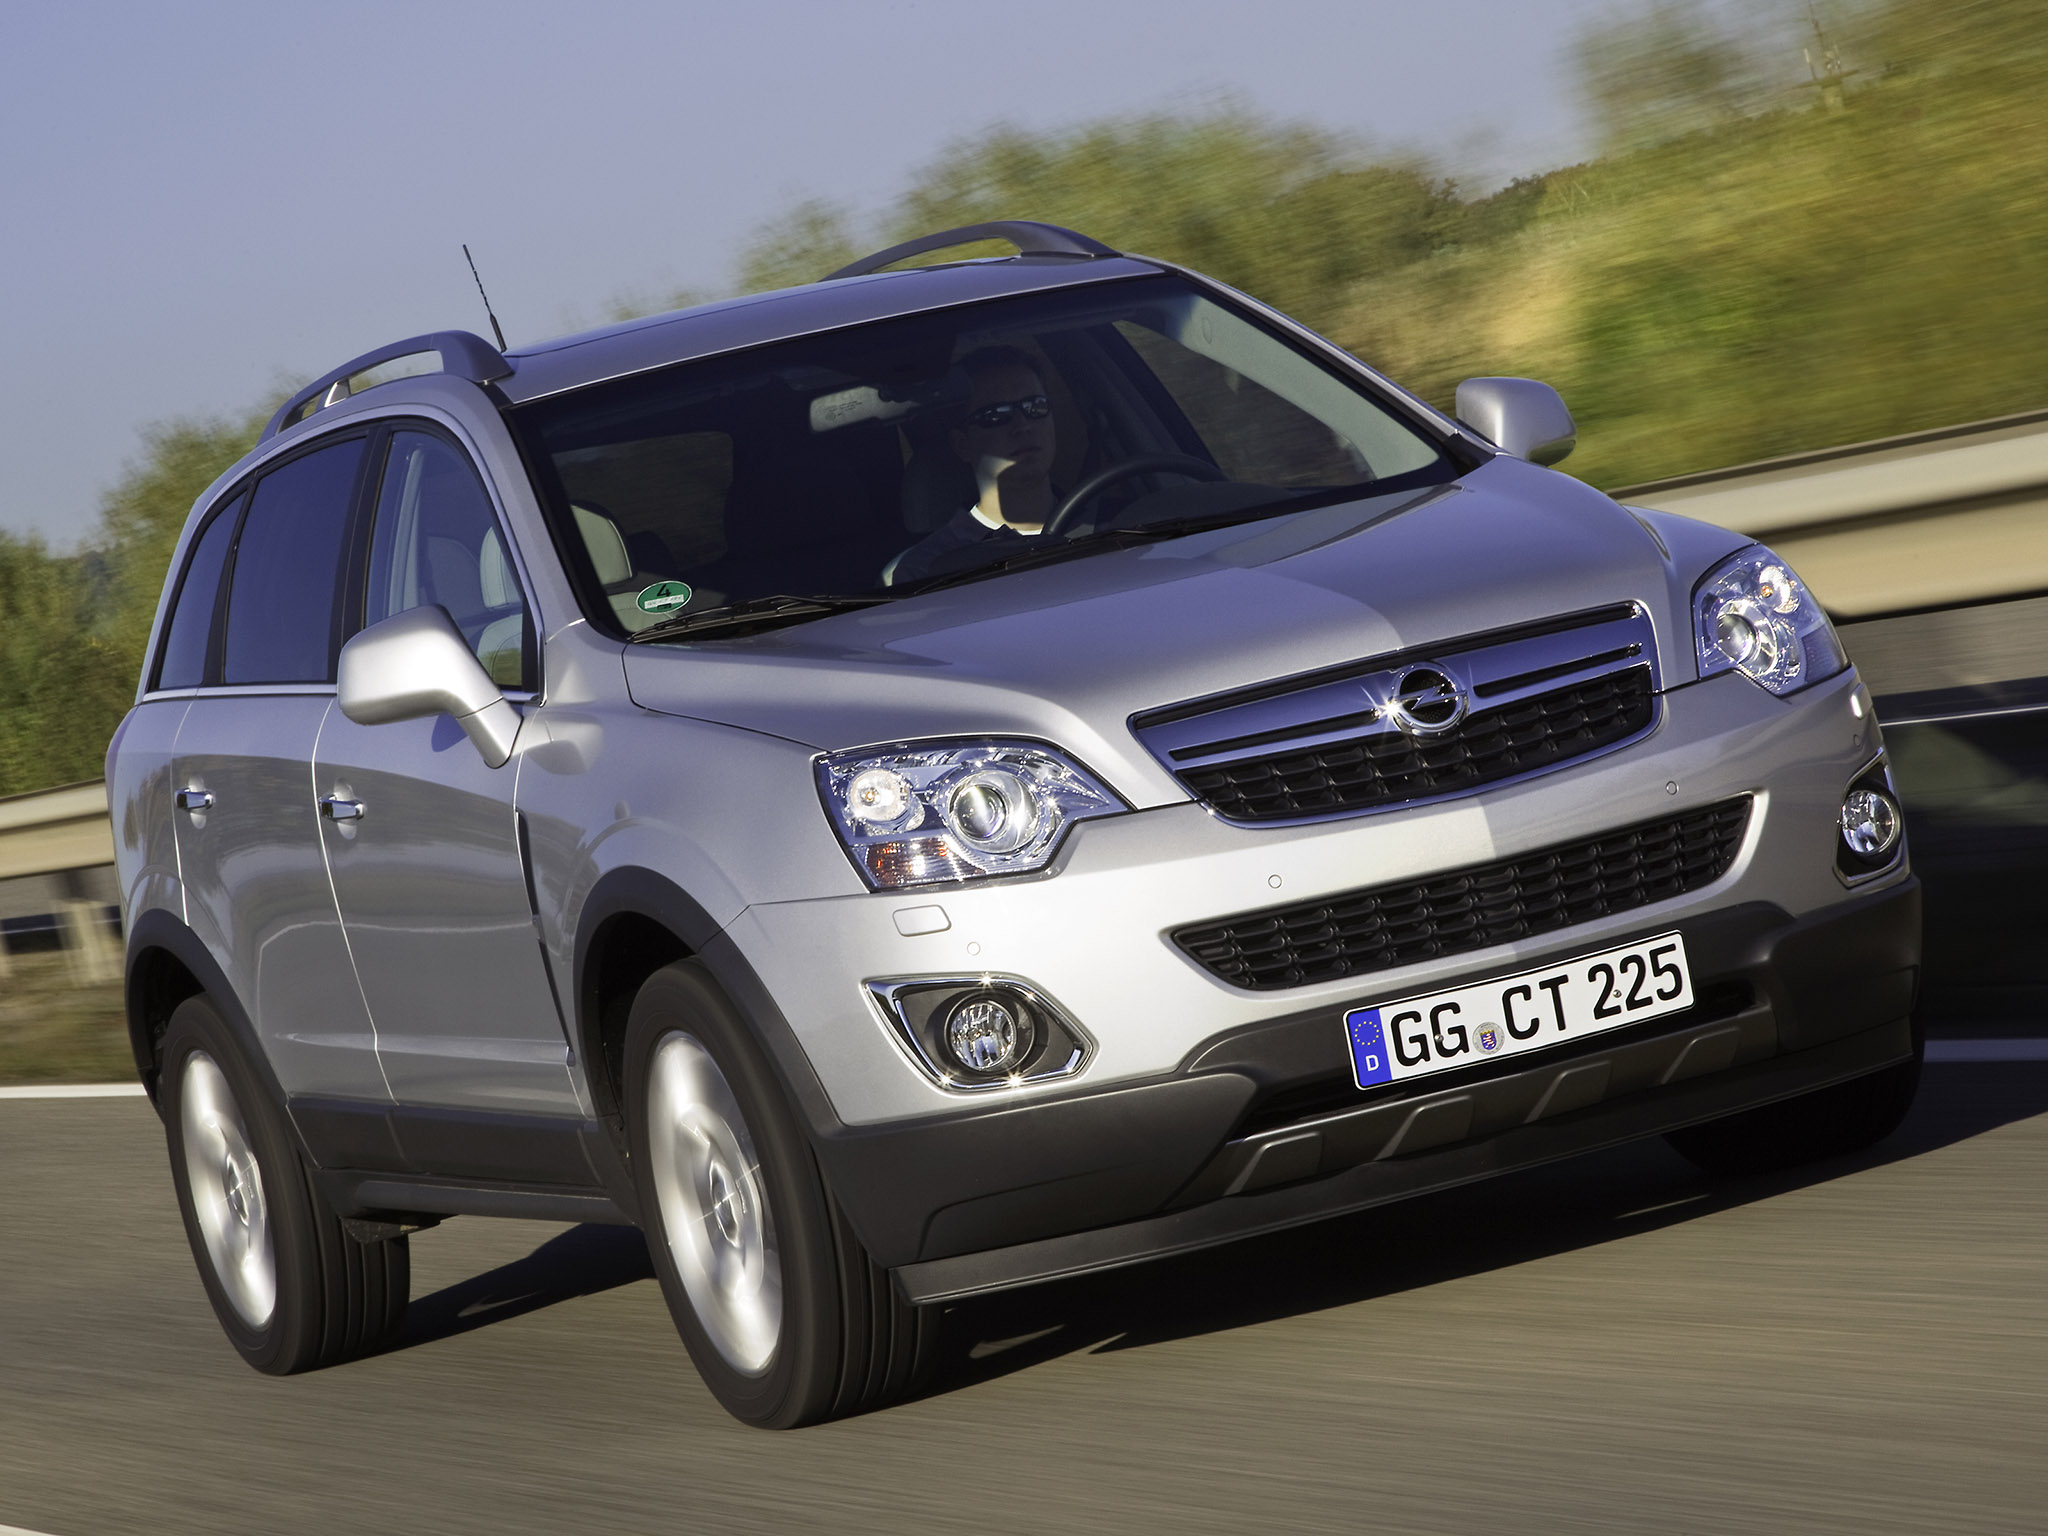 opel antara 2011 opel antara 2011 photo 06 car in pictures car photo gallery. Black Bedroom Furniture Sets. Home Design Ideas